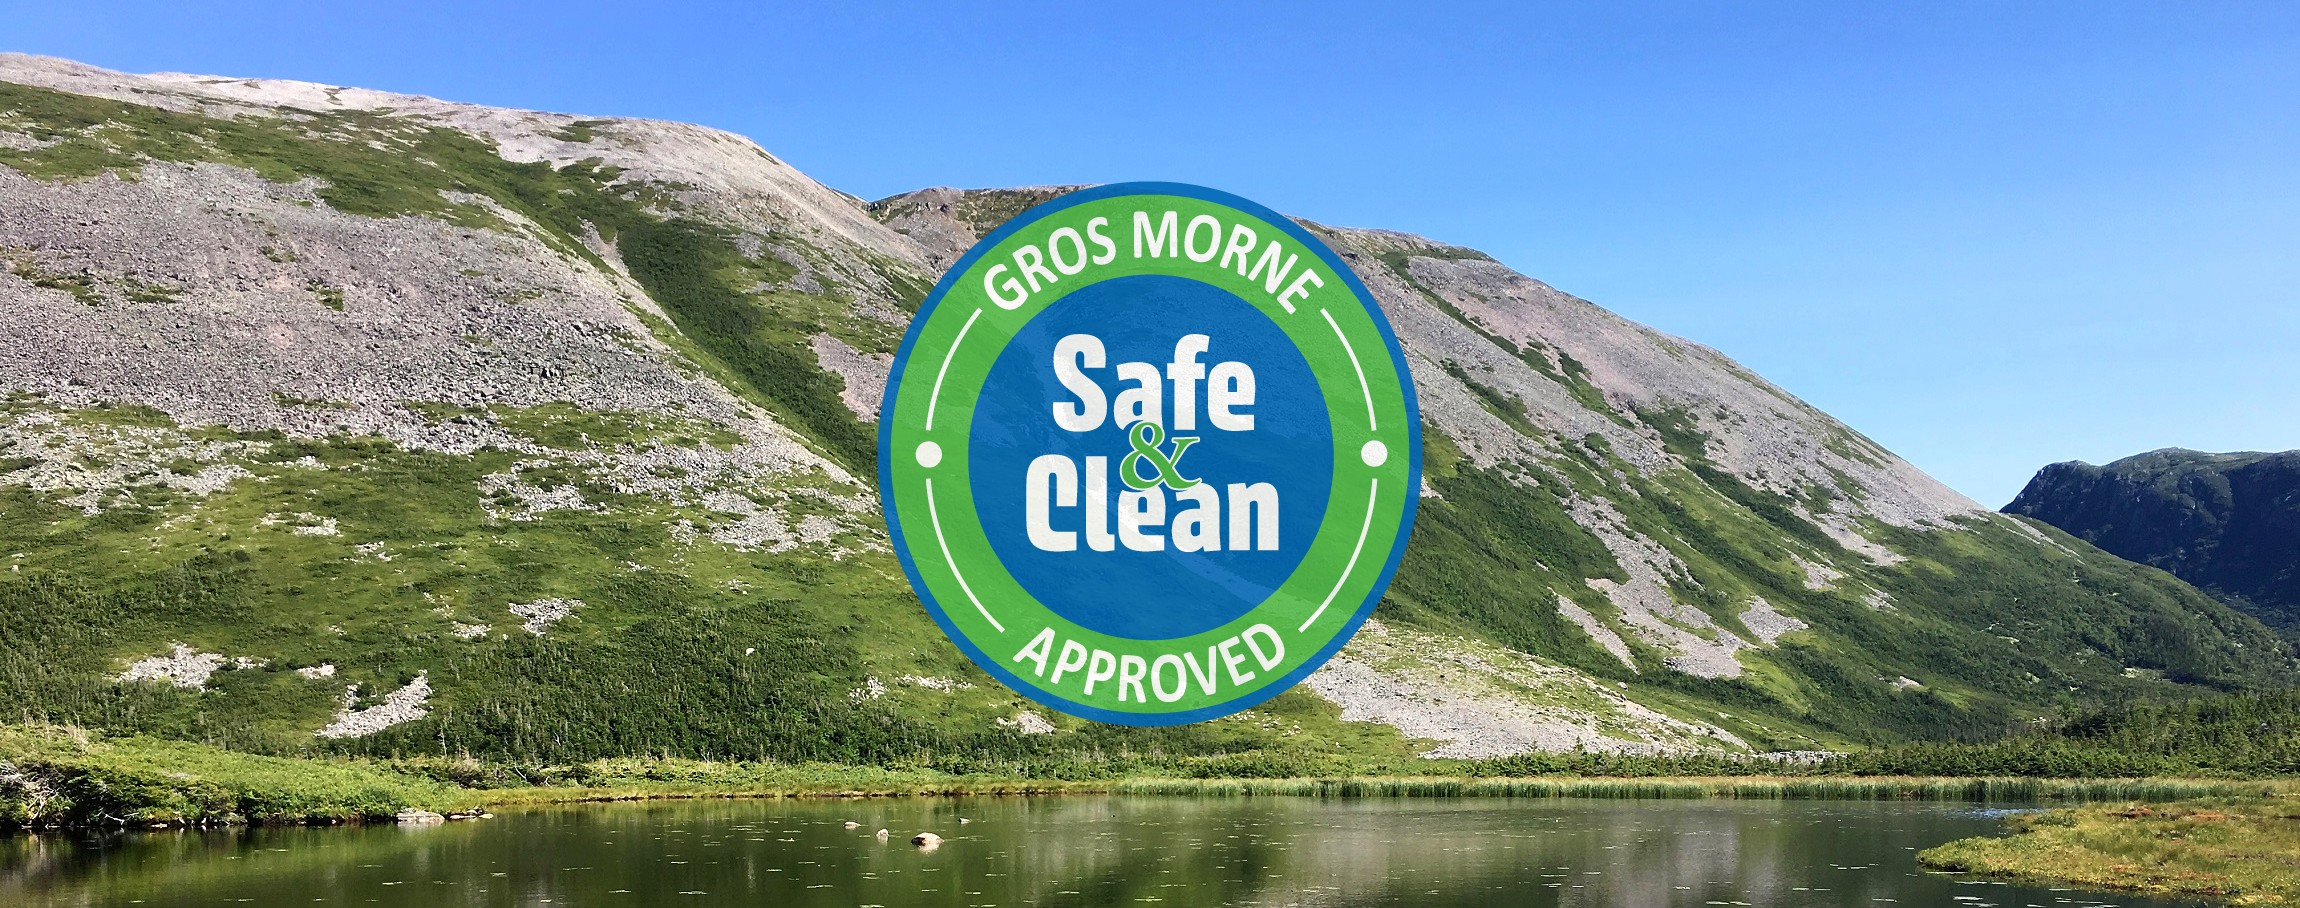 Gros Morne Safe and Clean